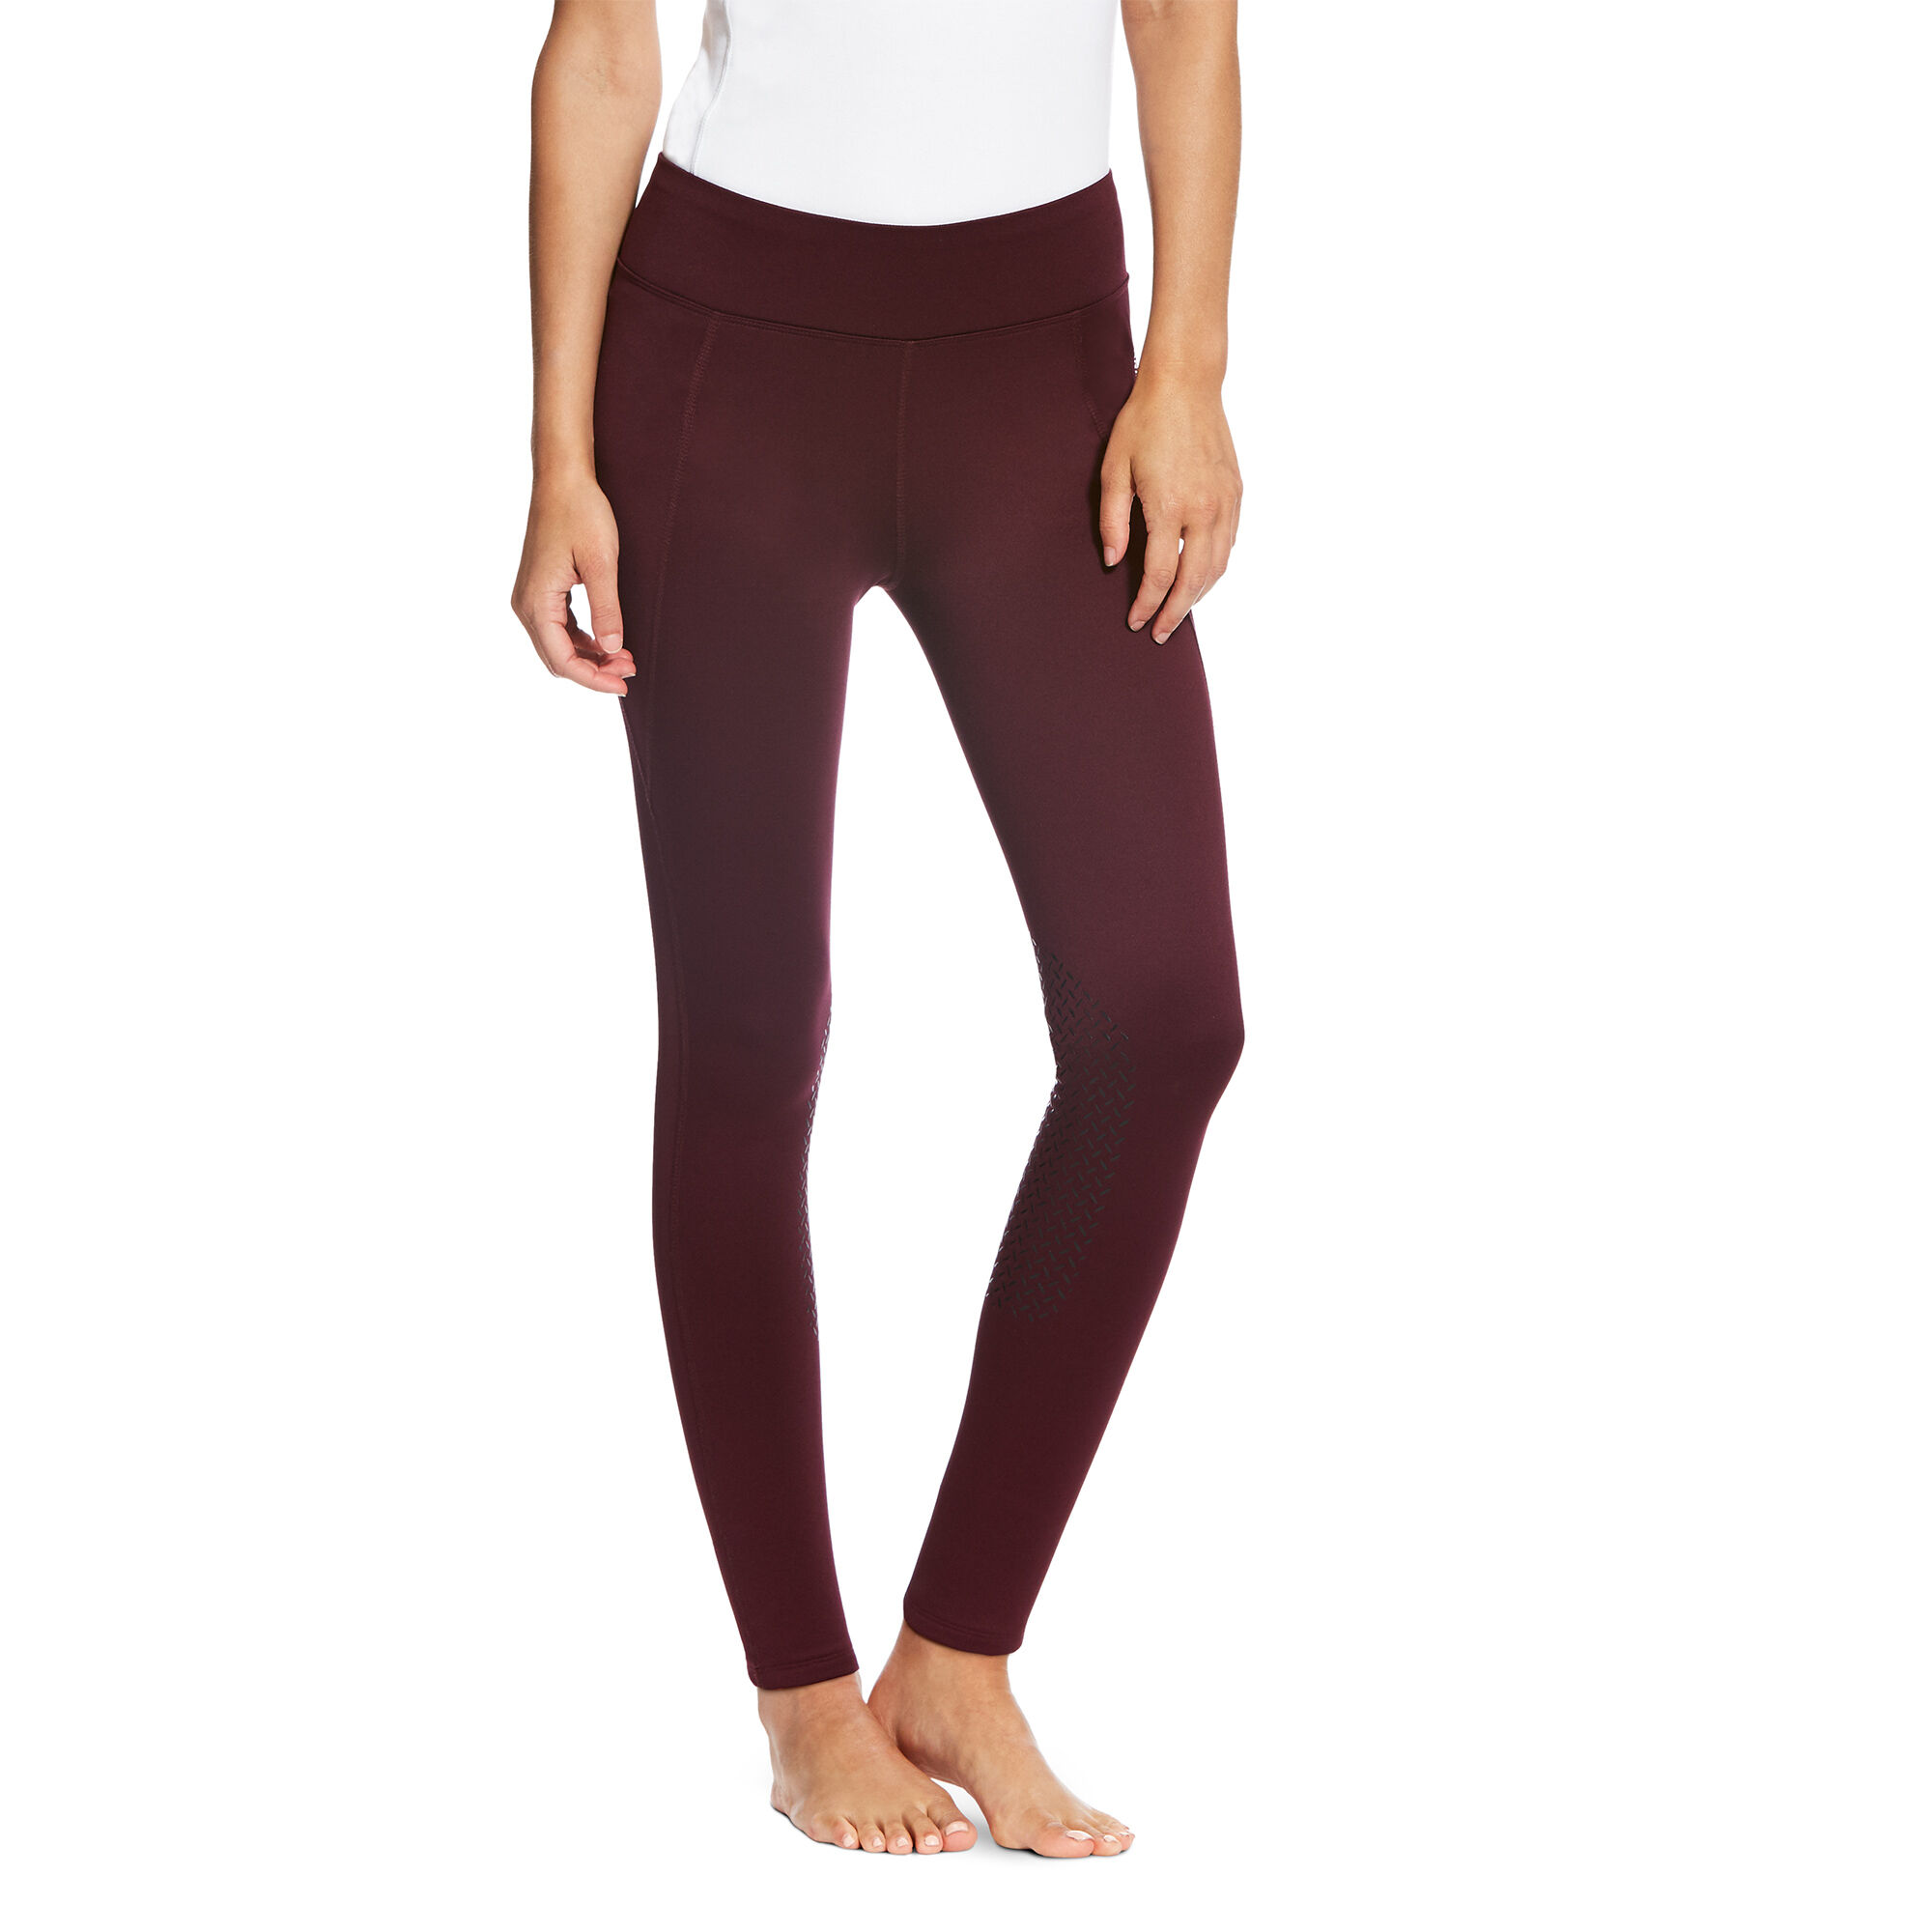 Diana Insulated Knee Patch Tight